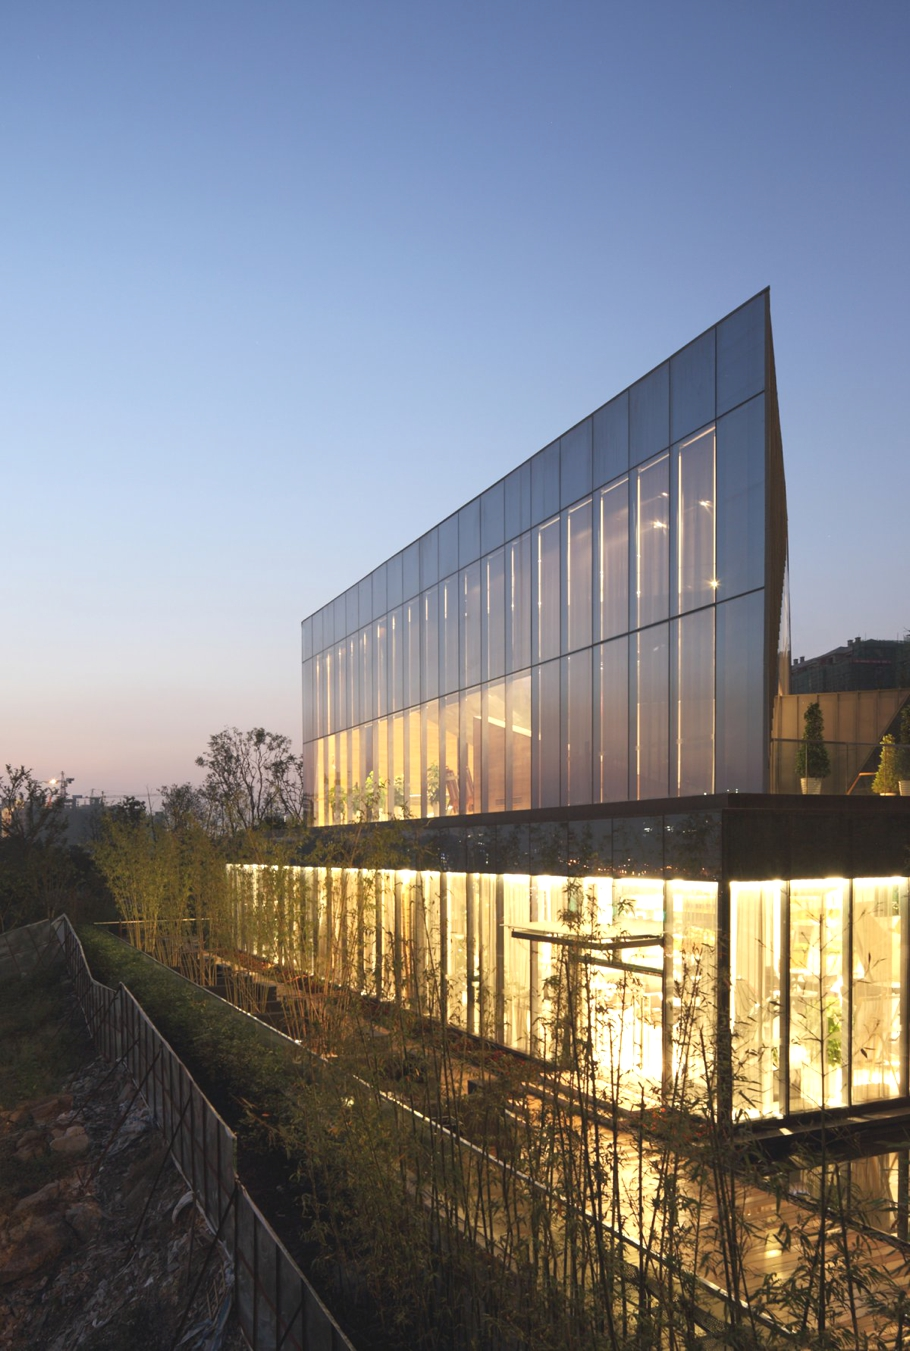 Contemporary chongqing greenland clubhouse china adelto for Clubhouse architecture design